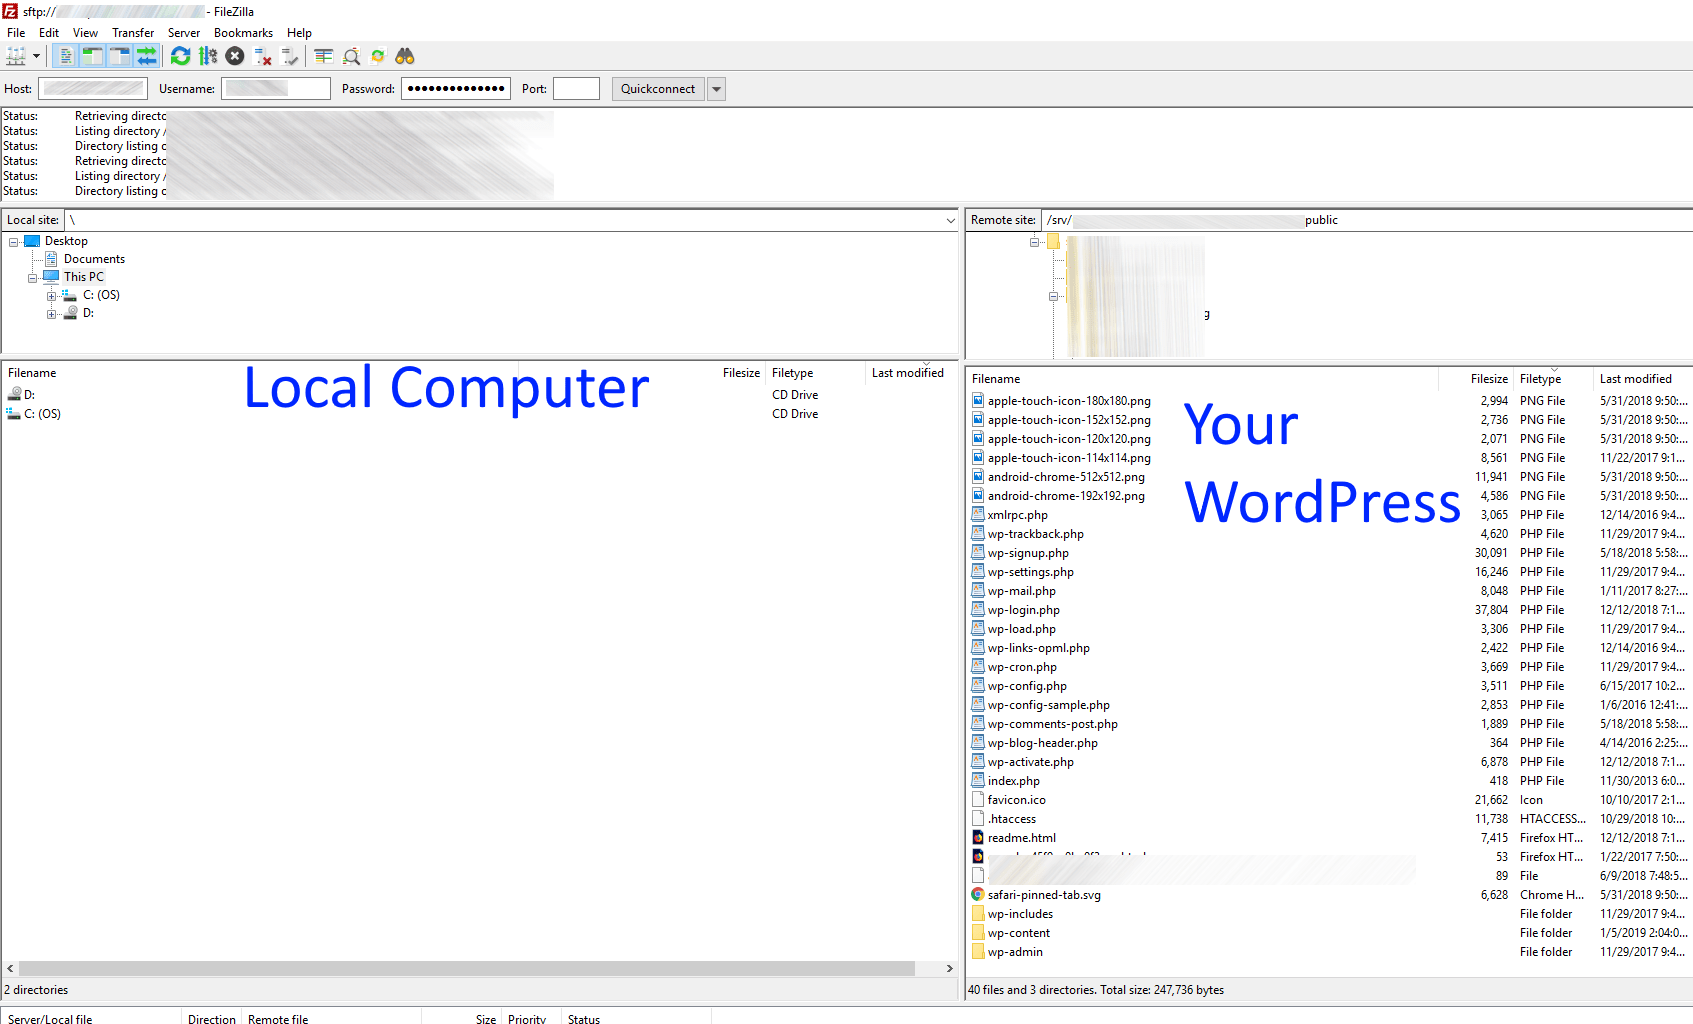 How to use the free Filezilla to securely connect to